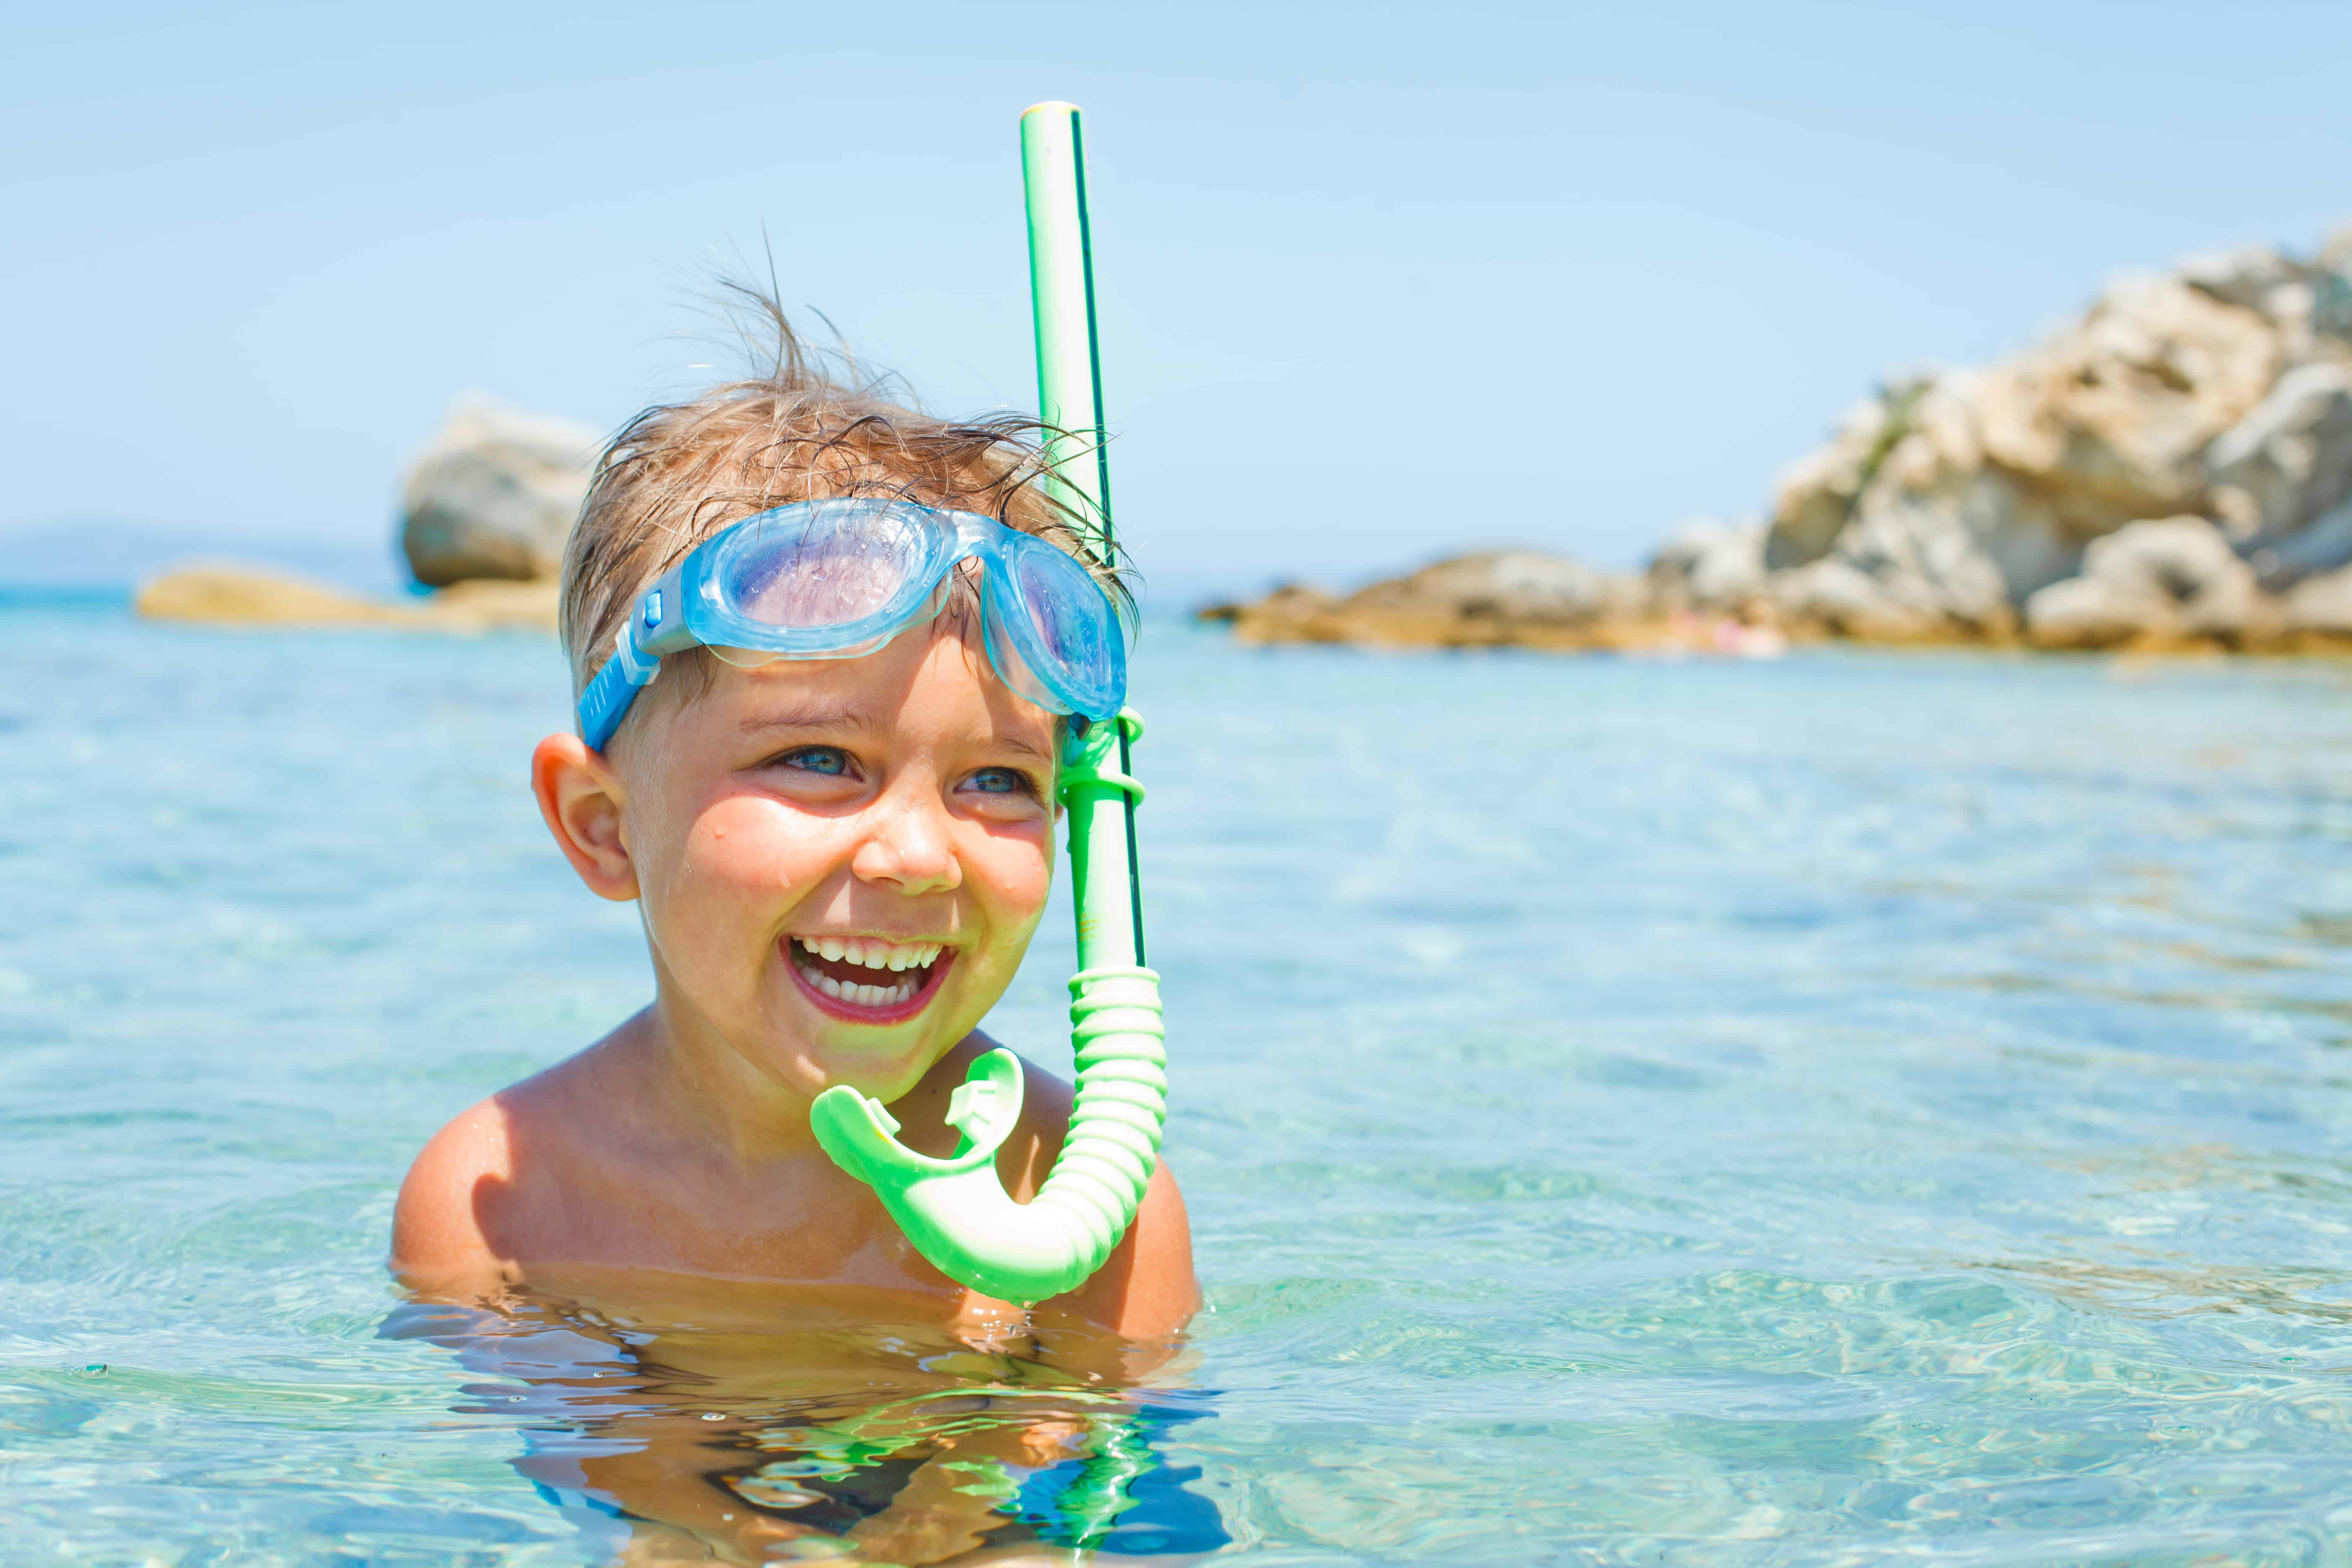 Snorkeling with your kids can be fun for the whole family